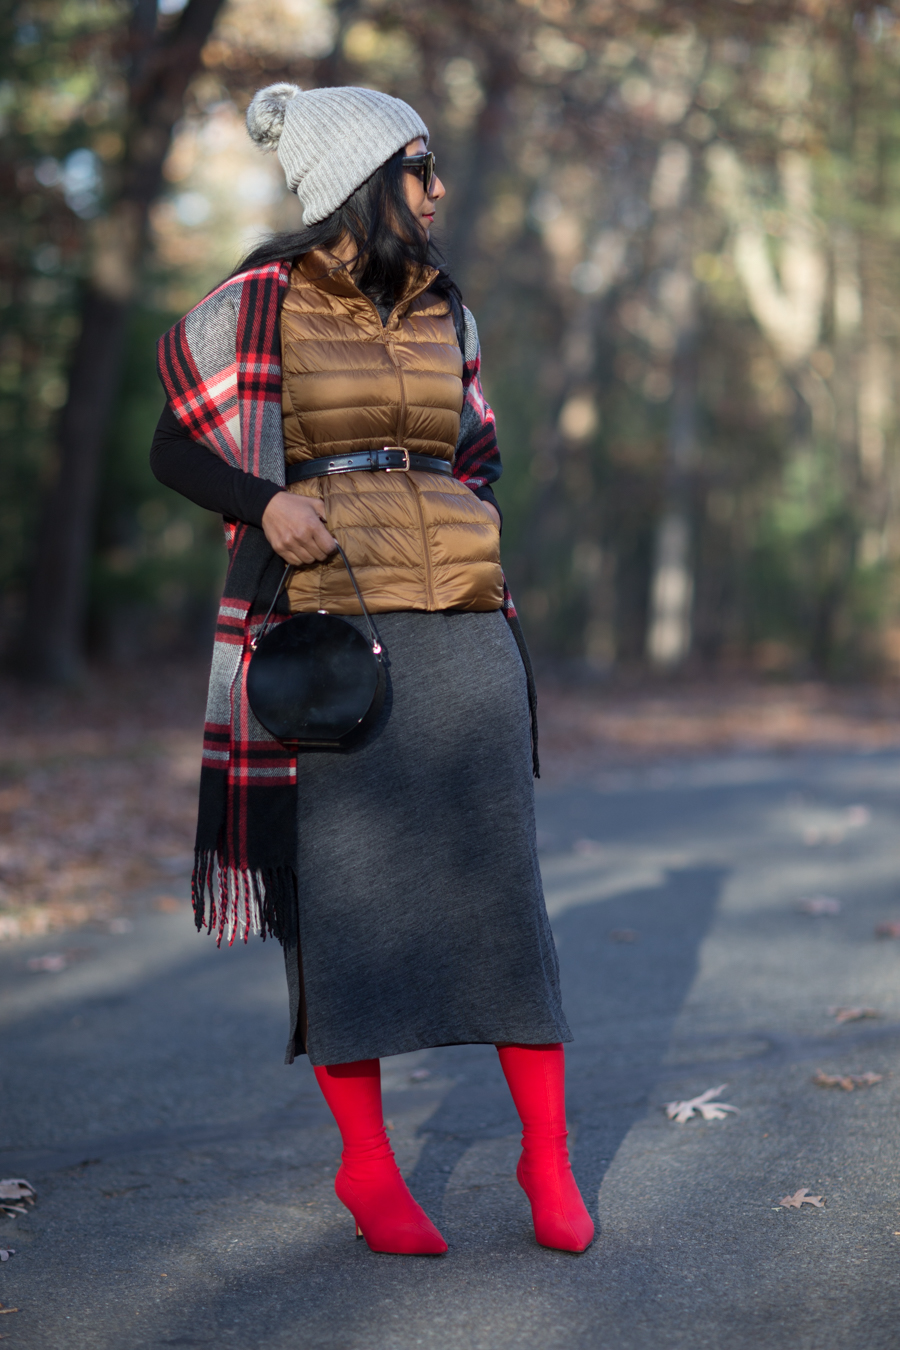 Fall Fashion and Layering Tips